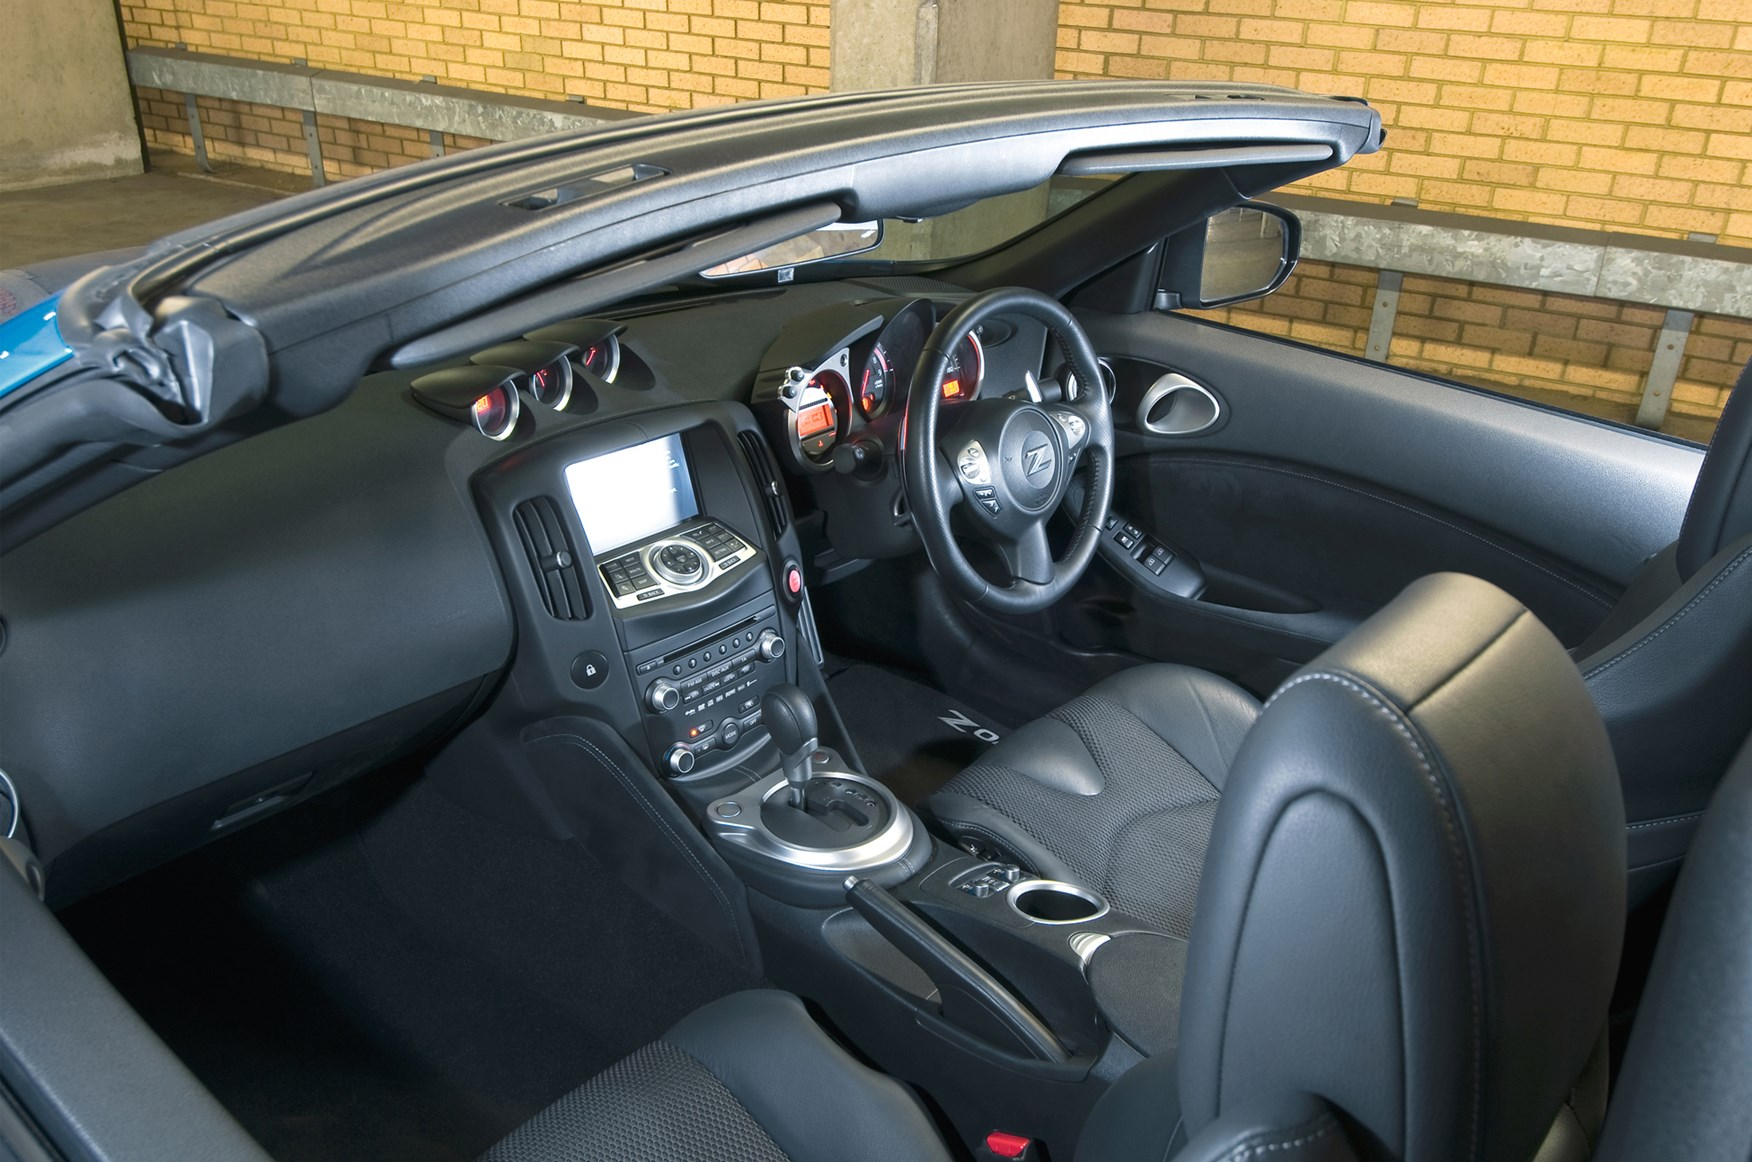 Used Nissan 370Z Roadster (2010 - 2014) Interior   Parkers